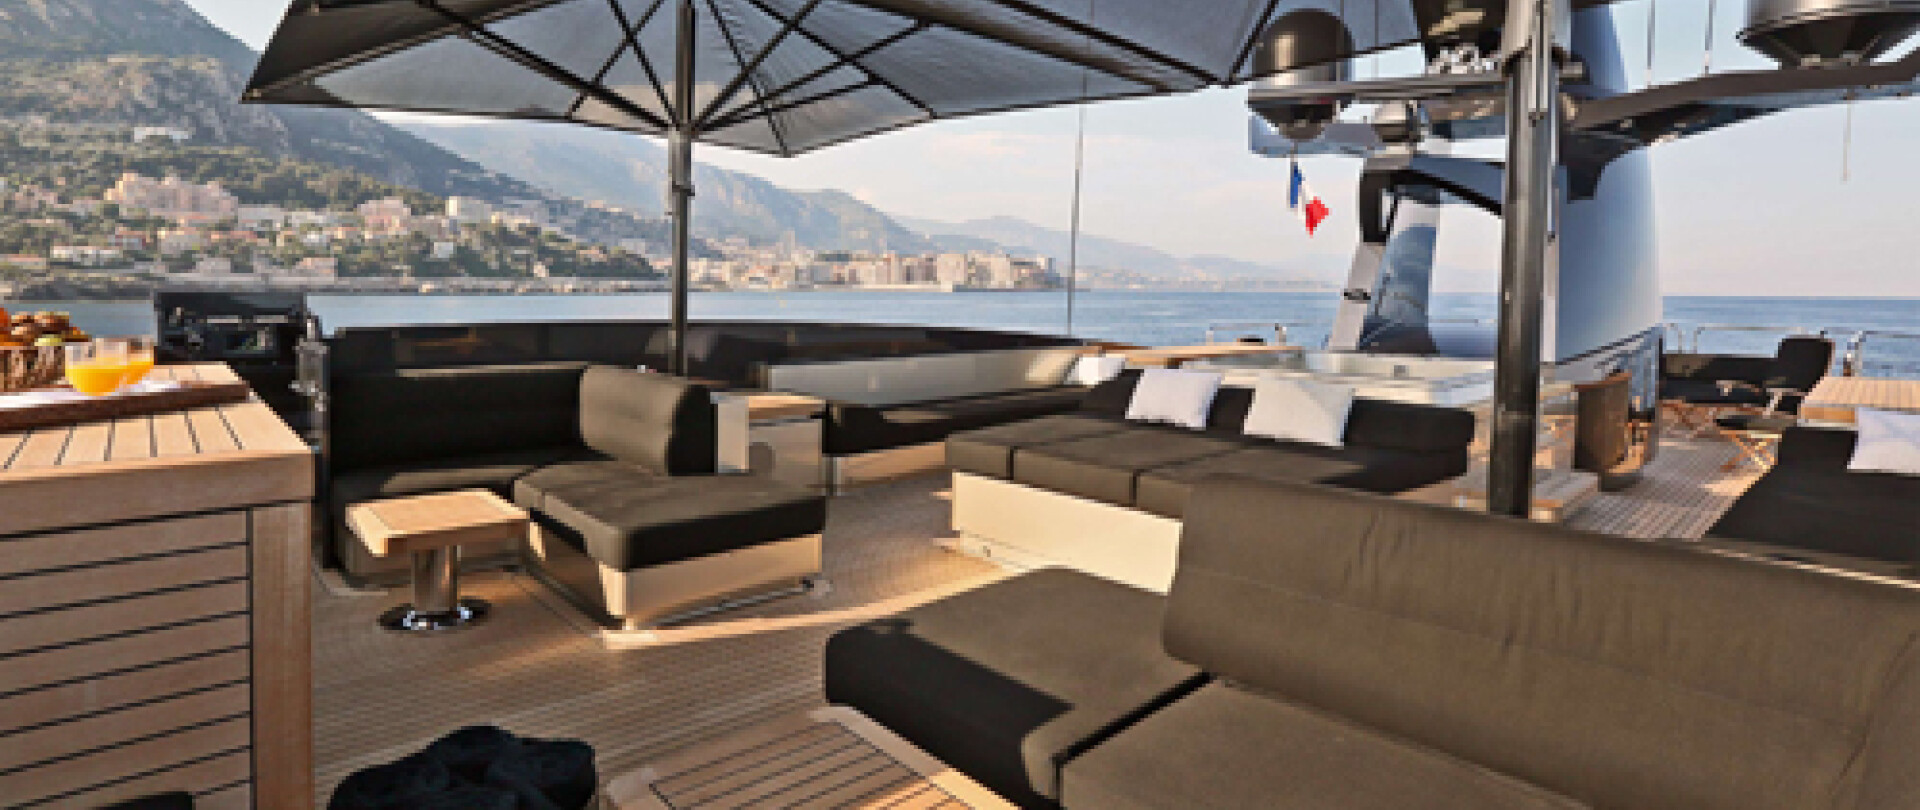 DB9 Yacht for Charter photo 15